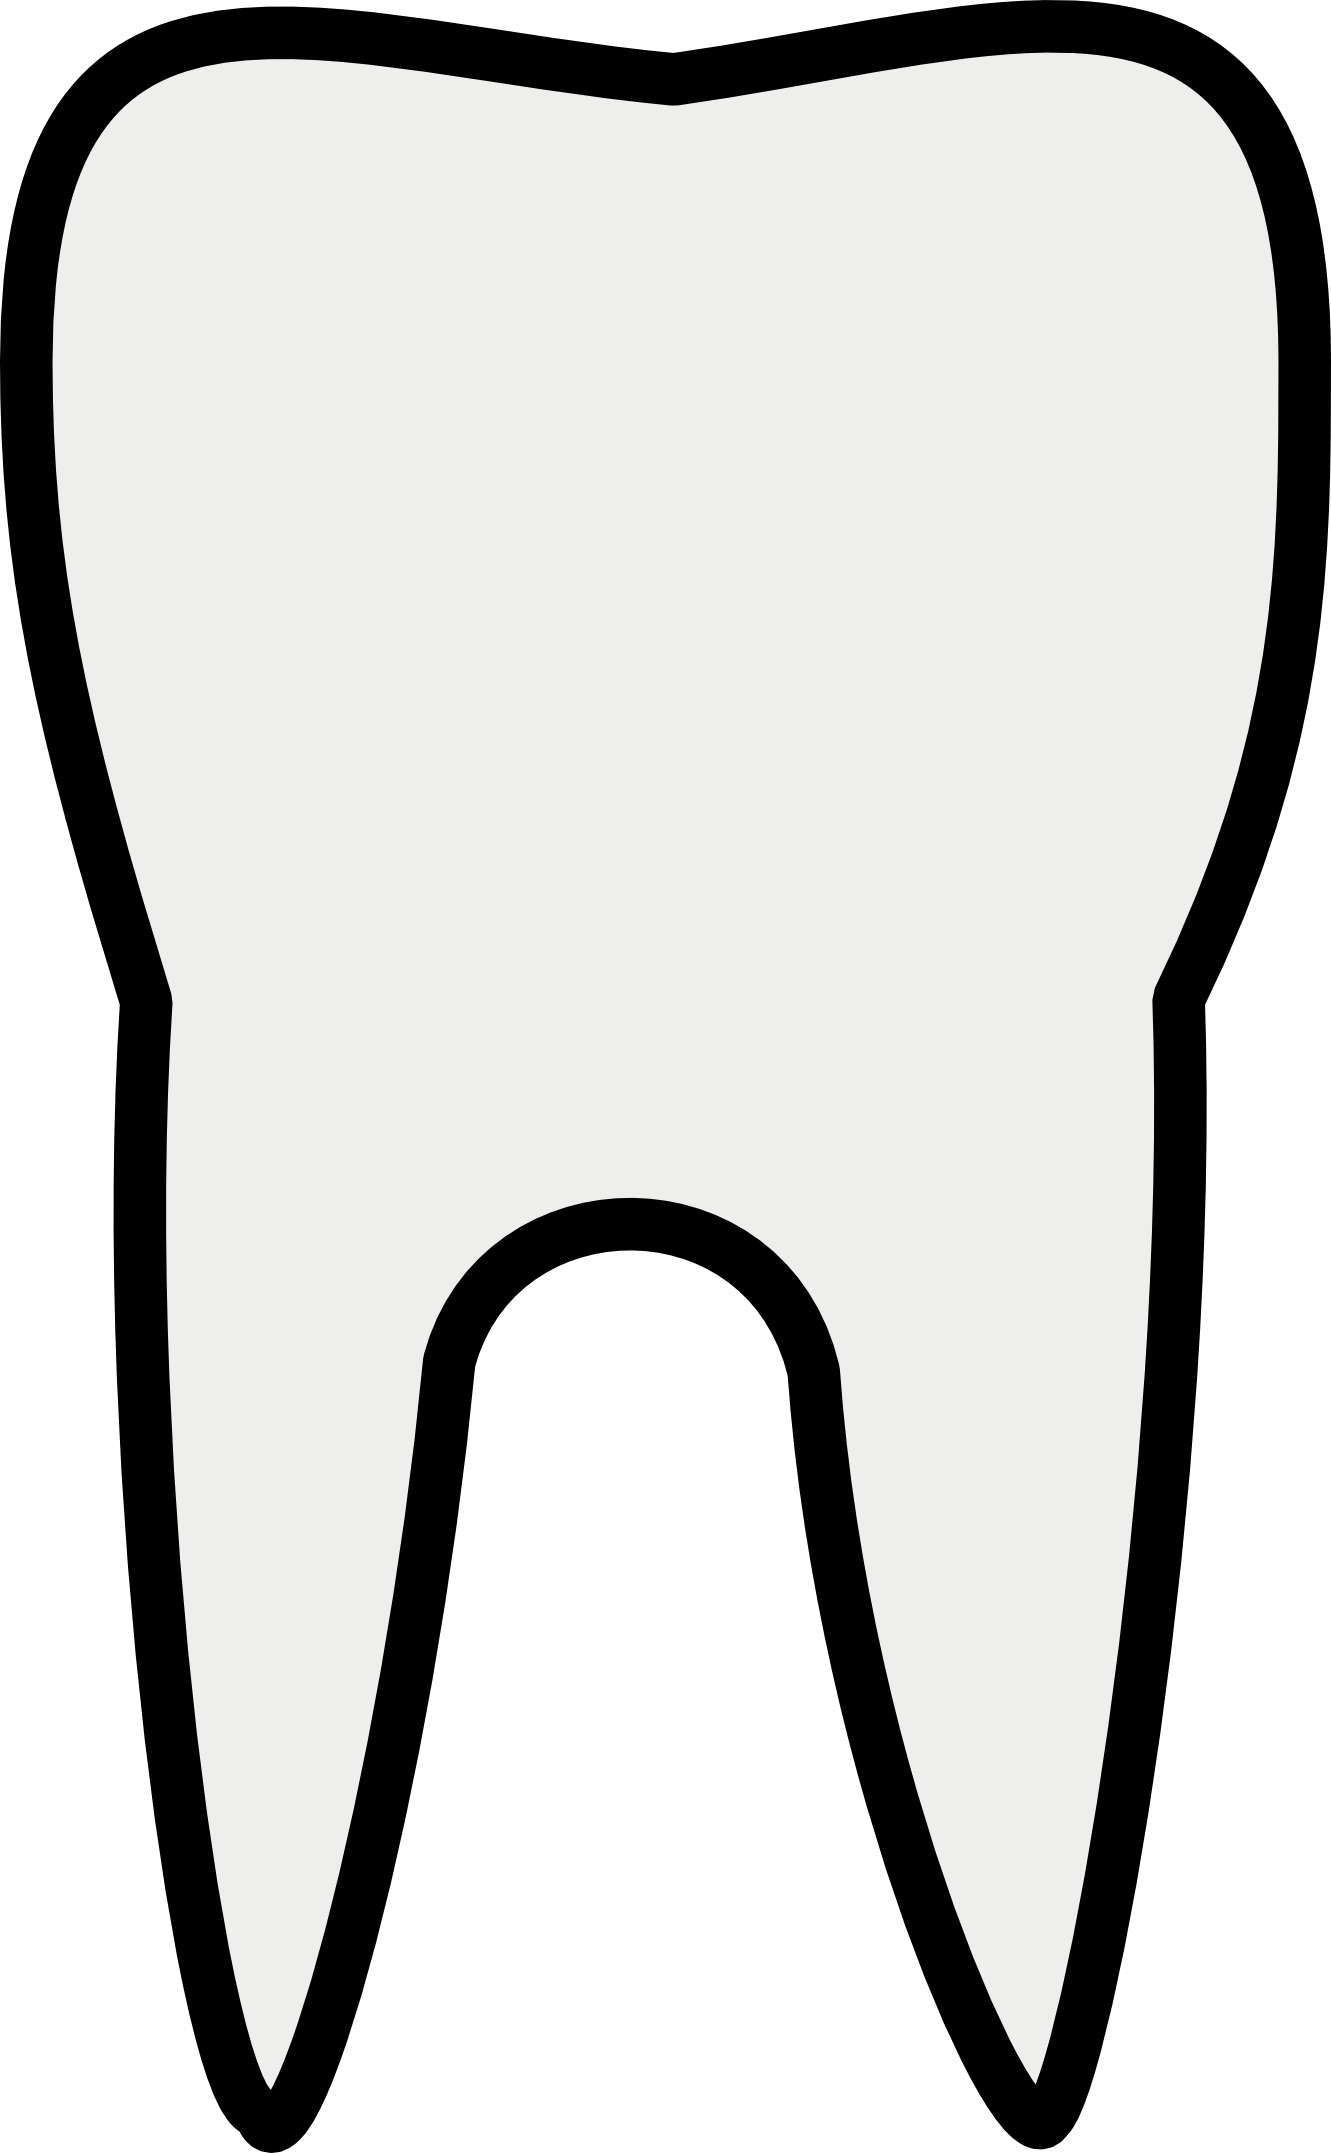 Clip Art Teeth Clipart clip art of teeth that clipart kid black and white panda free images